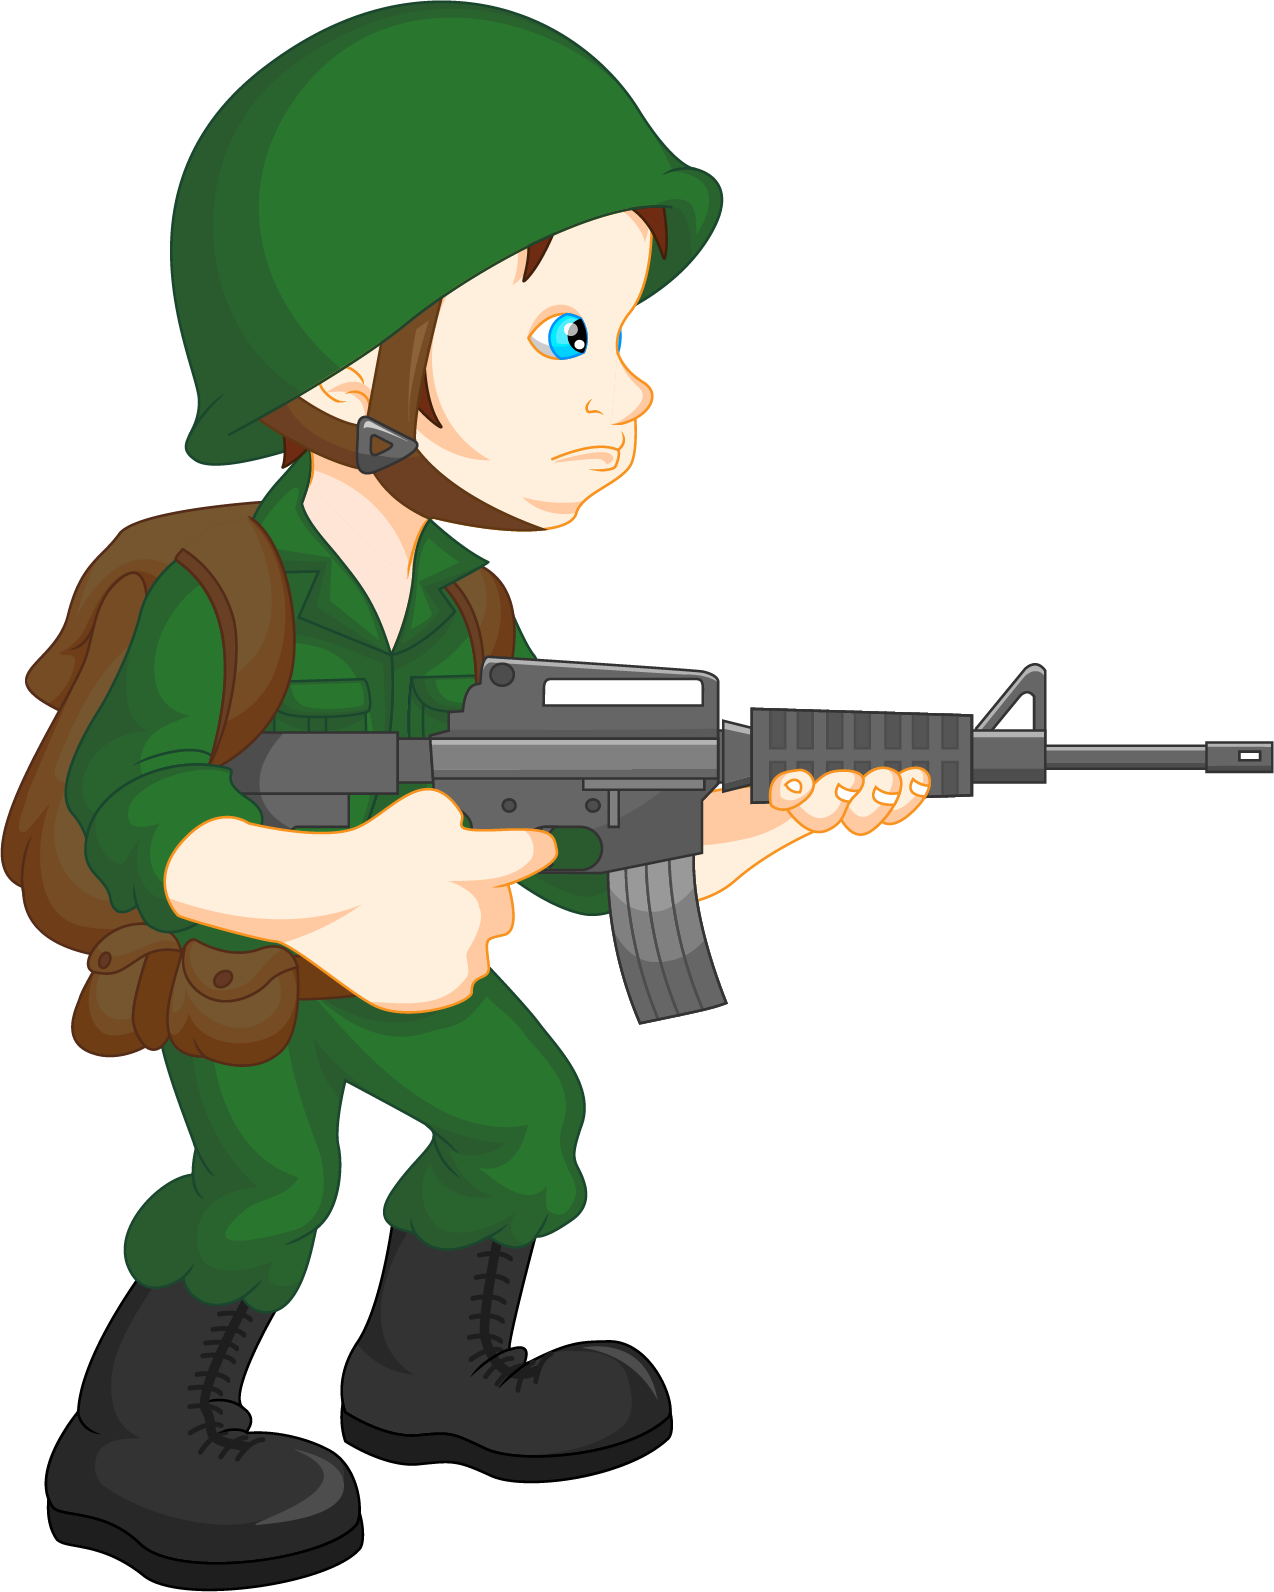 Soldiers clipart cute, Soldiers cute Transparent FREE for.